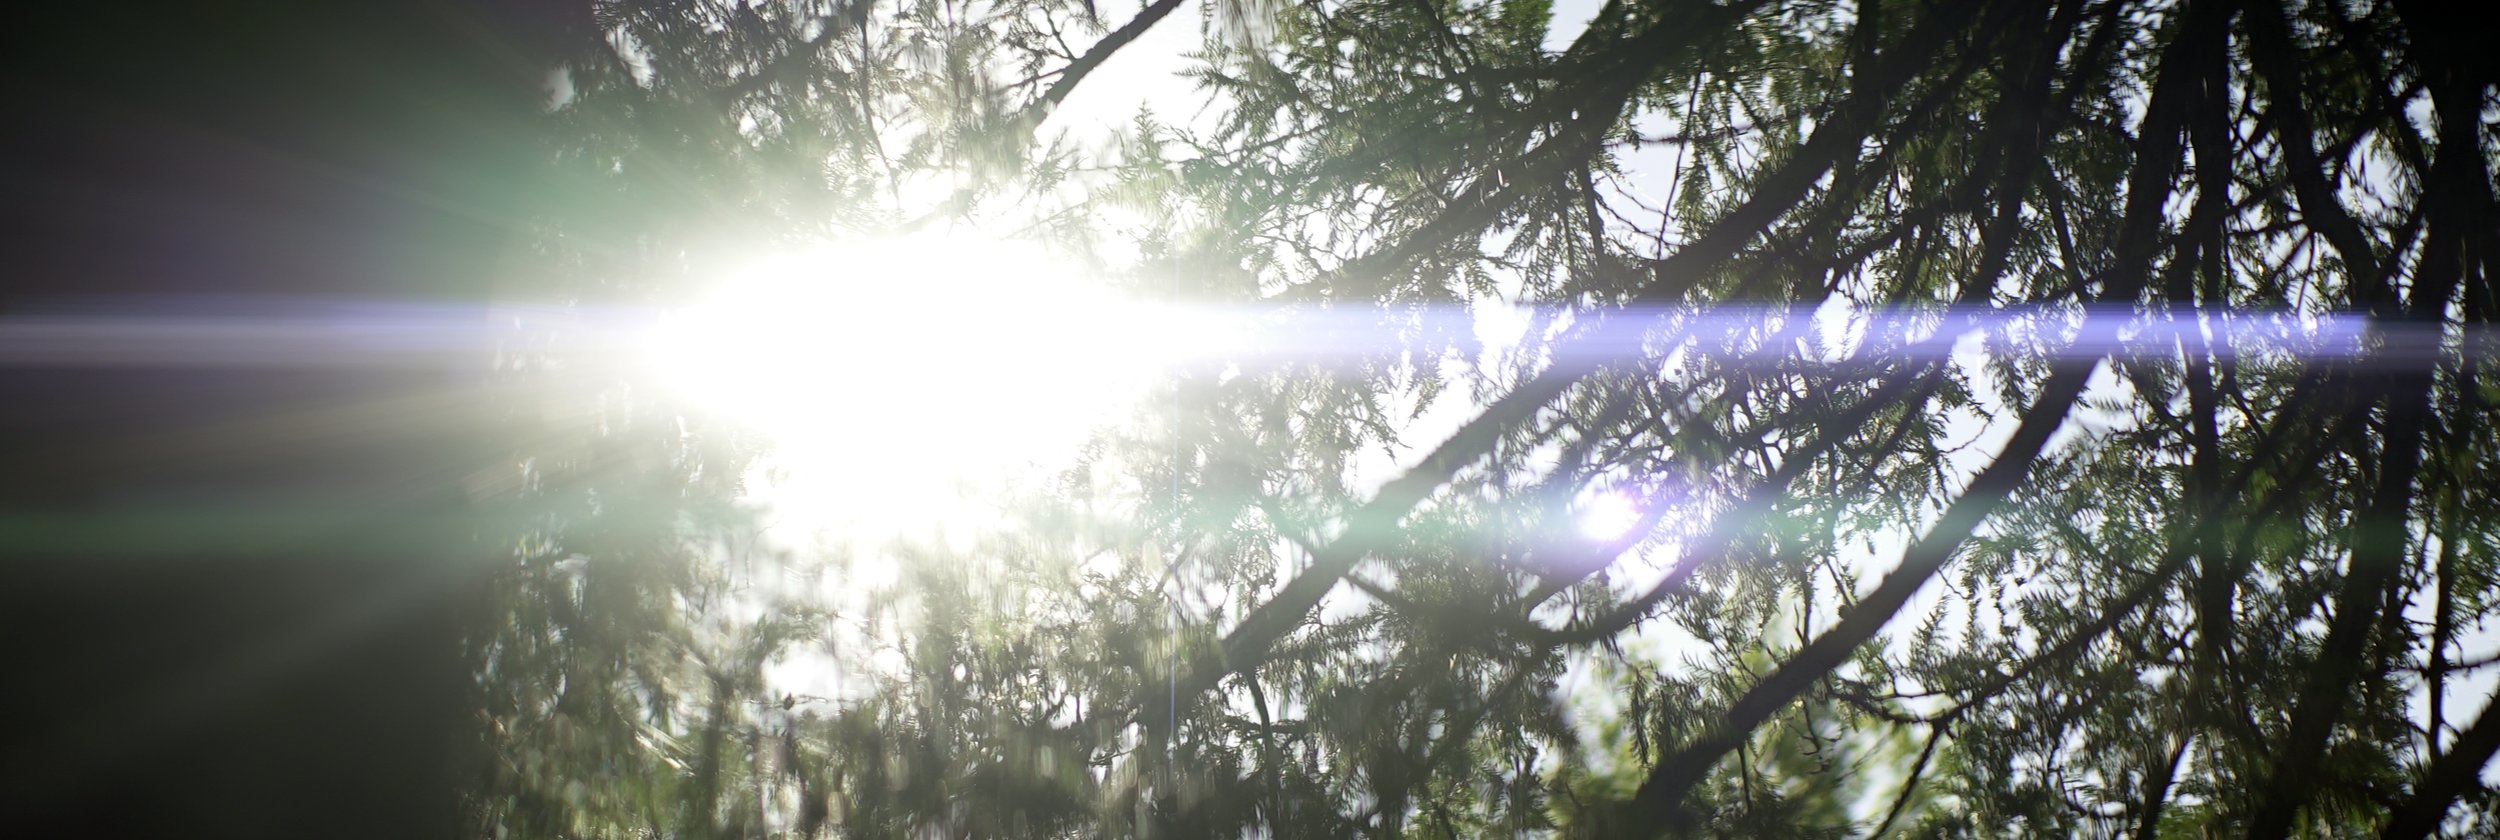 Lomo 100mm anamorphic lens | Sun-flare through some trees at the north end of Mackinac Island, MI. Photo by: Keith Nickoson